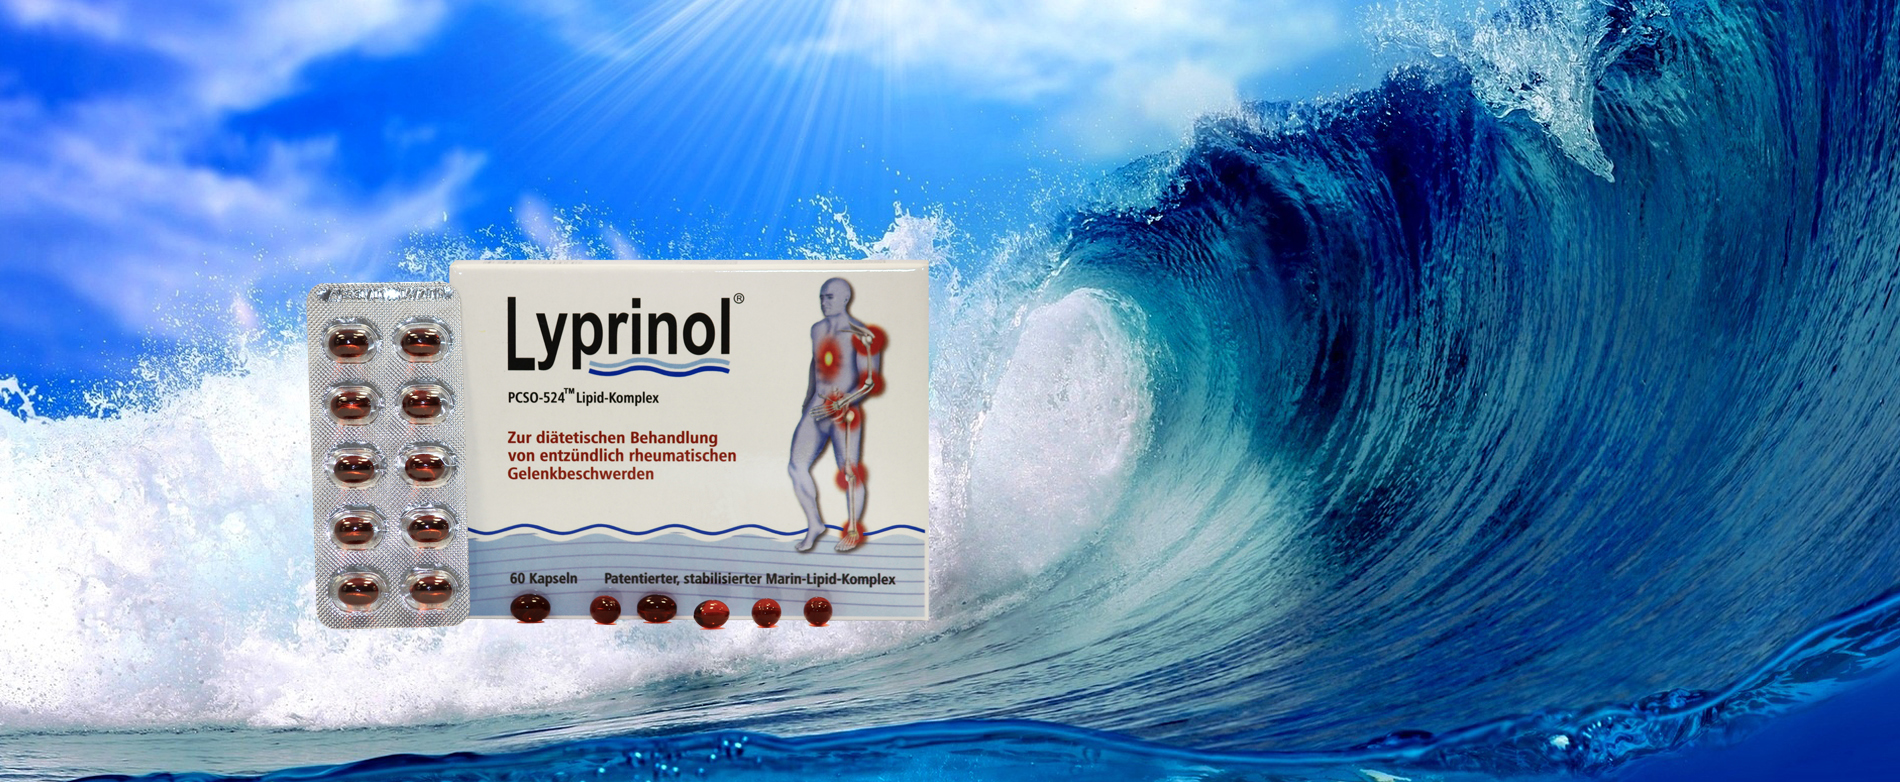 Lyprinol slide001